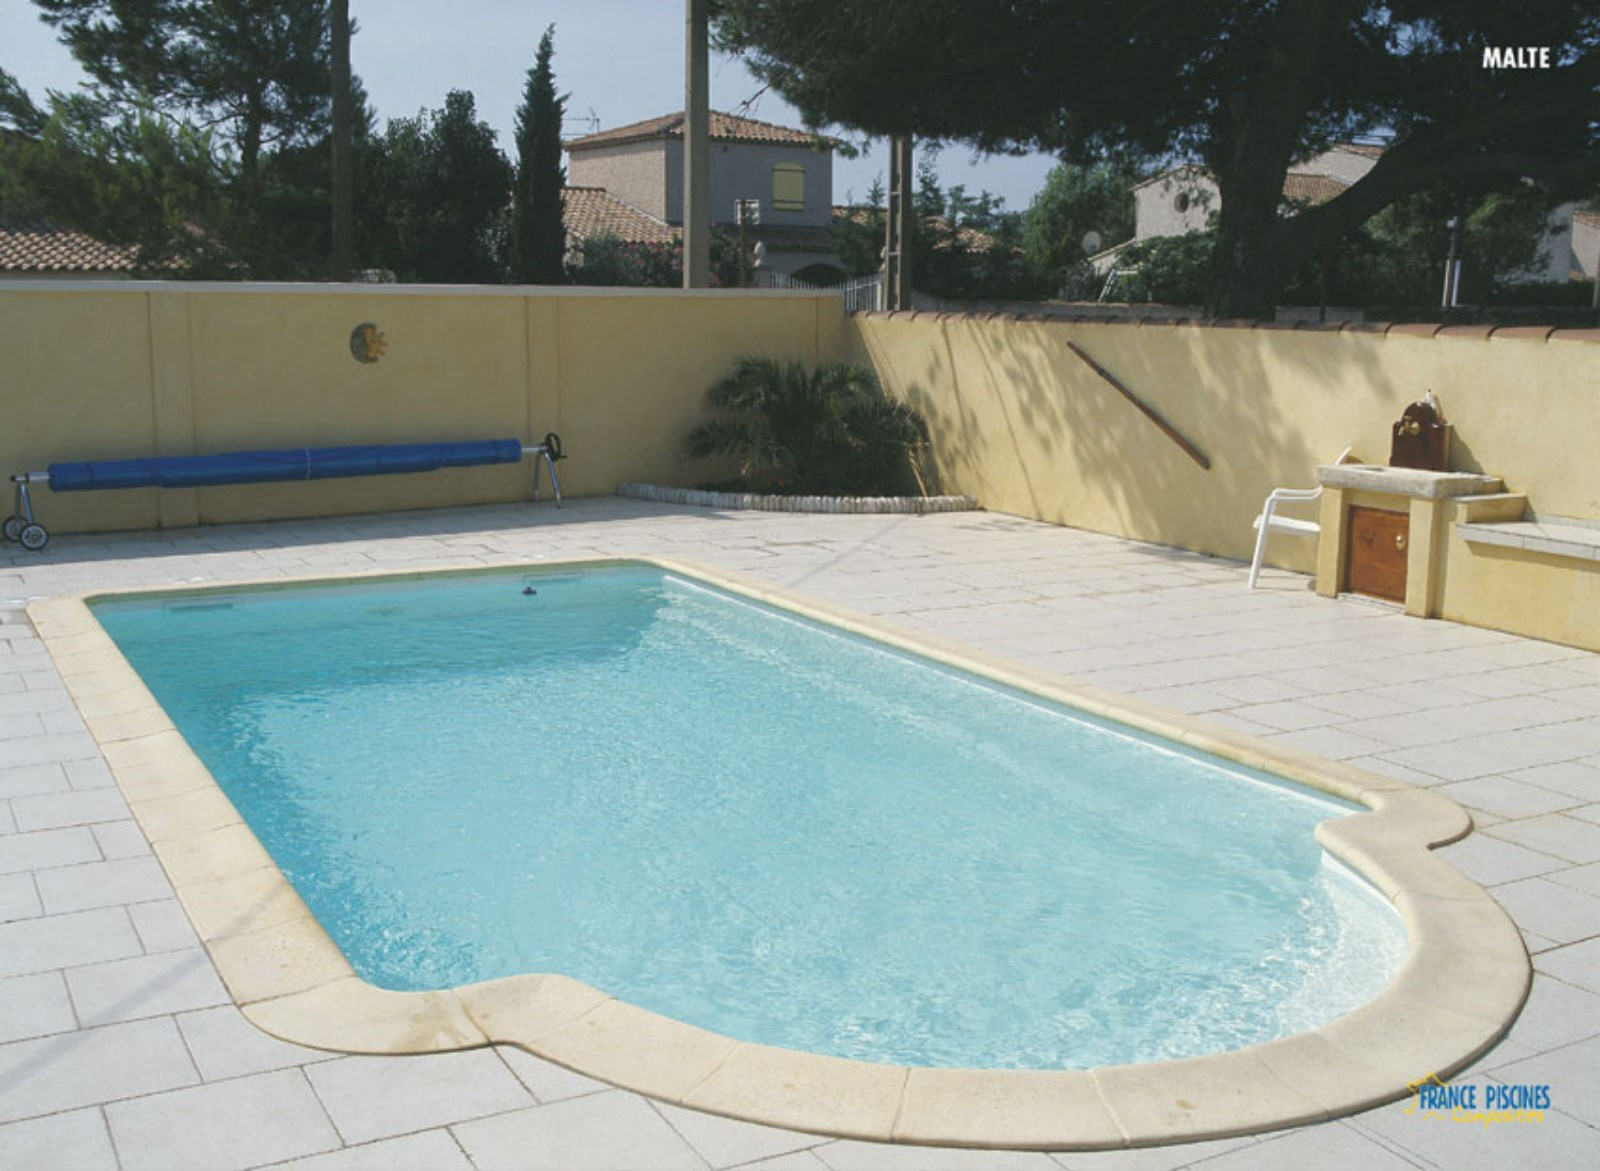 Piscine enterr e pas chere for Piscine semie enterree pas chere